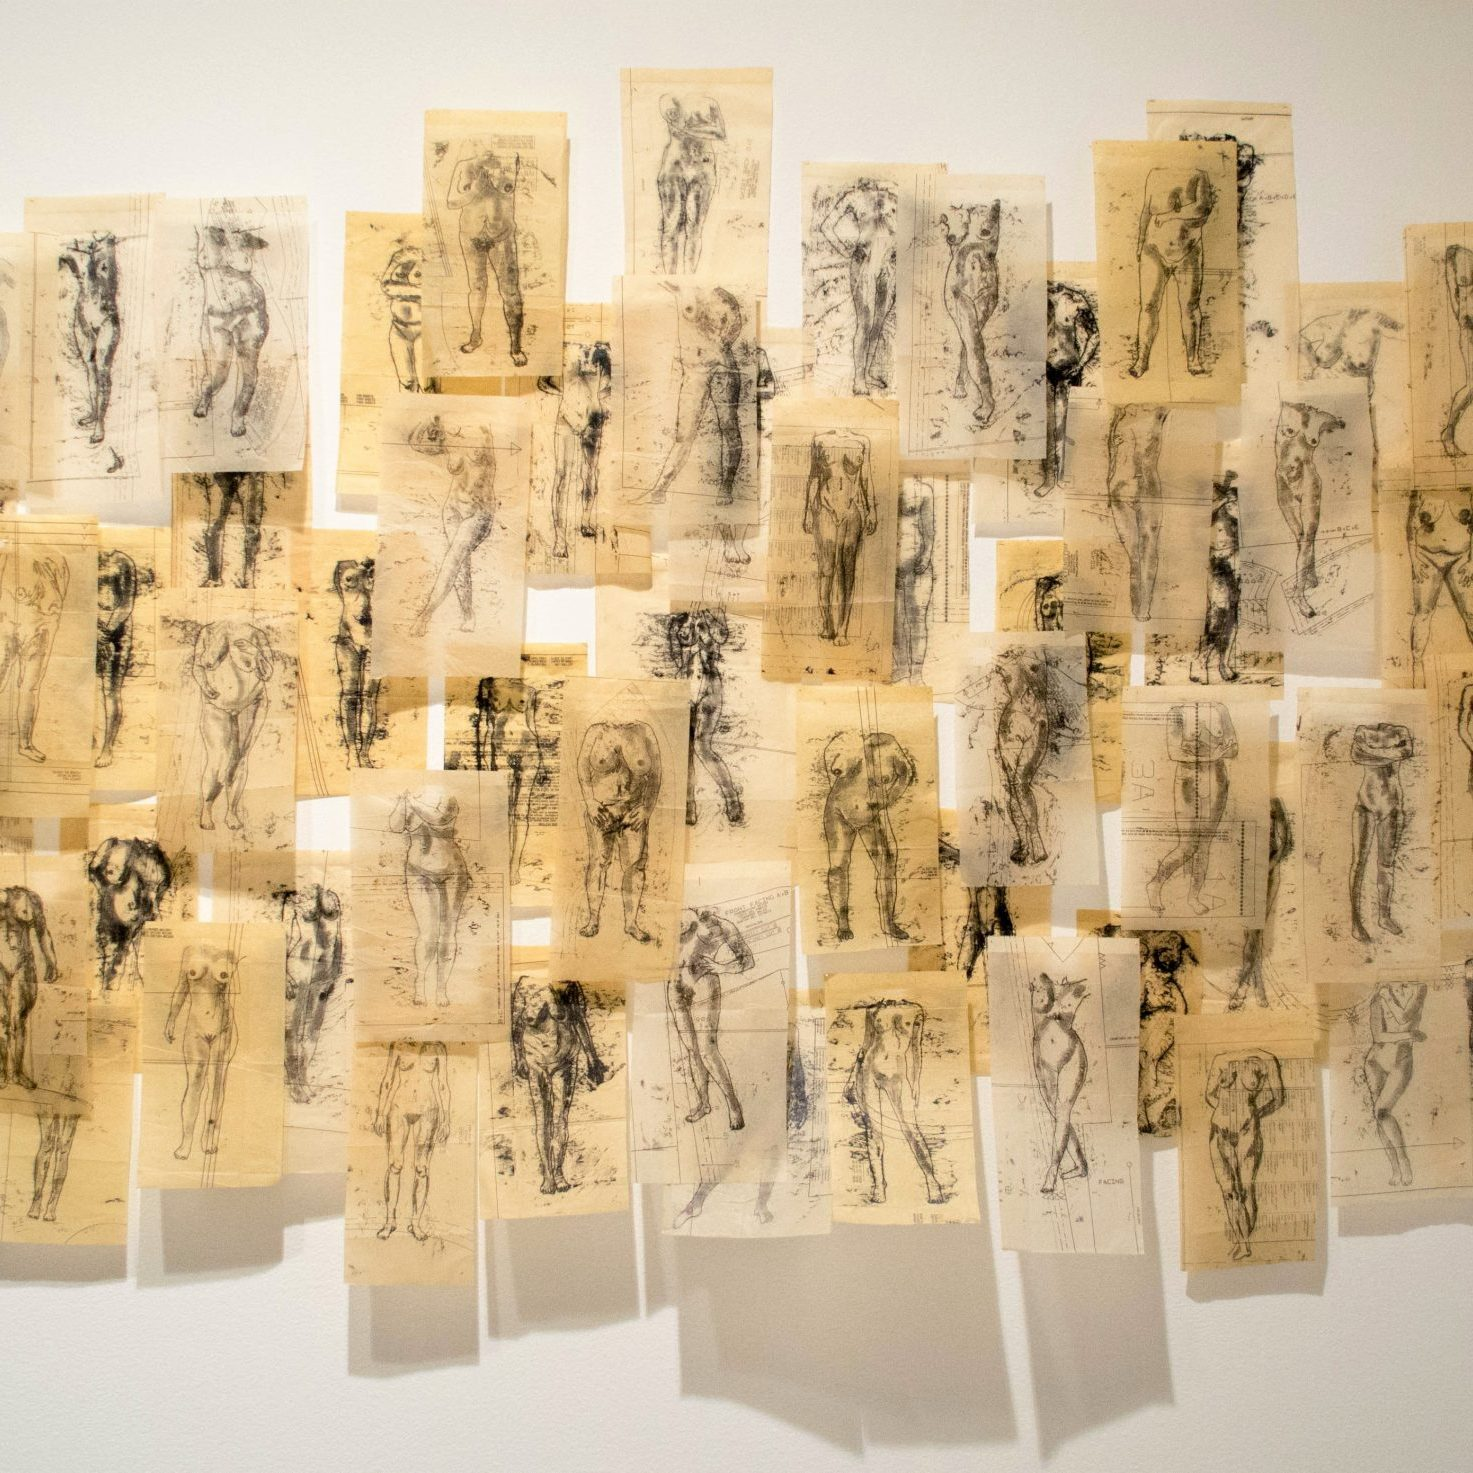 Approximately 30 pieces of tan paper with sketches of nude figures created with black pen on dress makers paper are hung next to each other on the wall